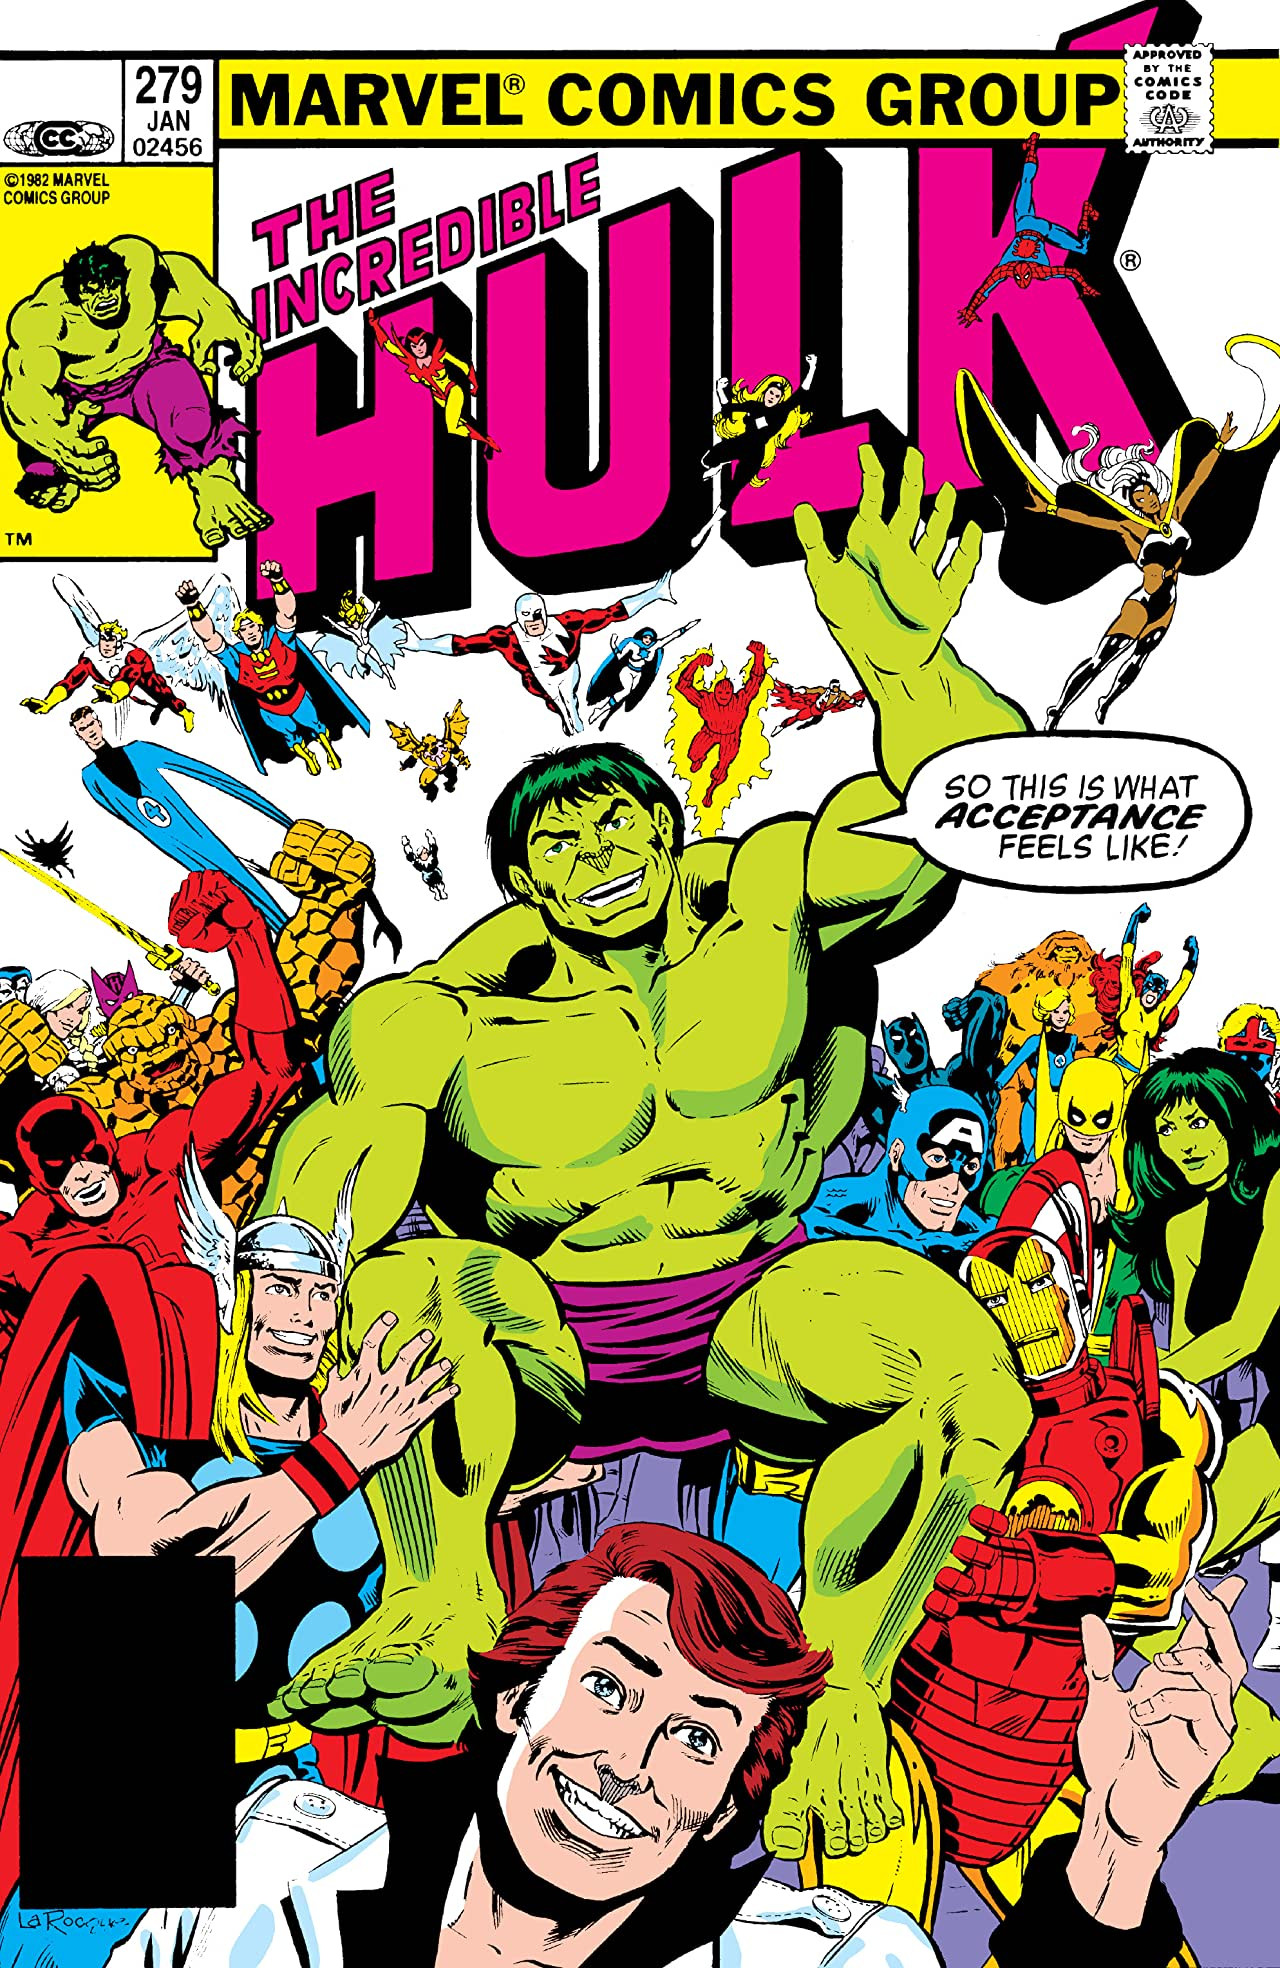 Incredible Hulk Vol 1 279